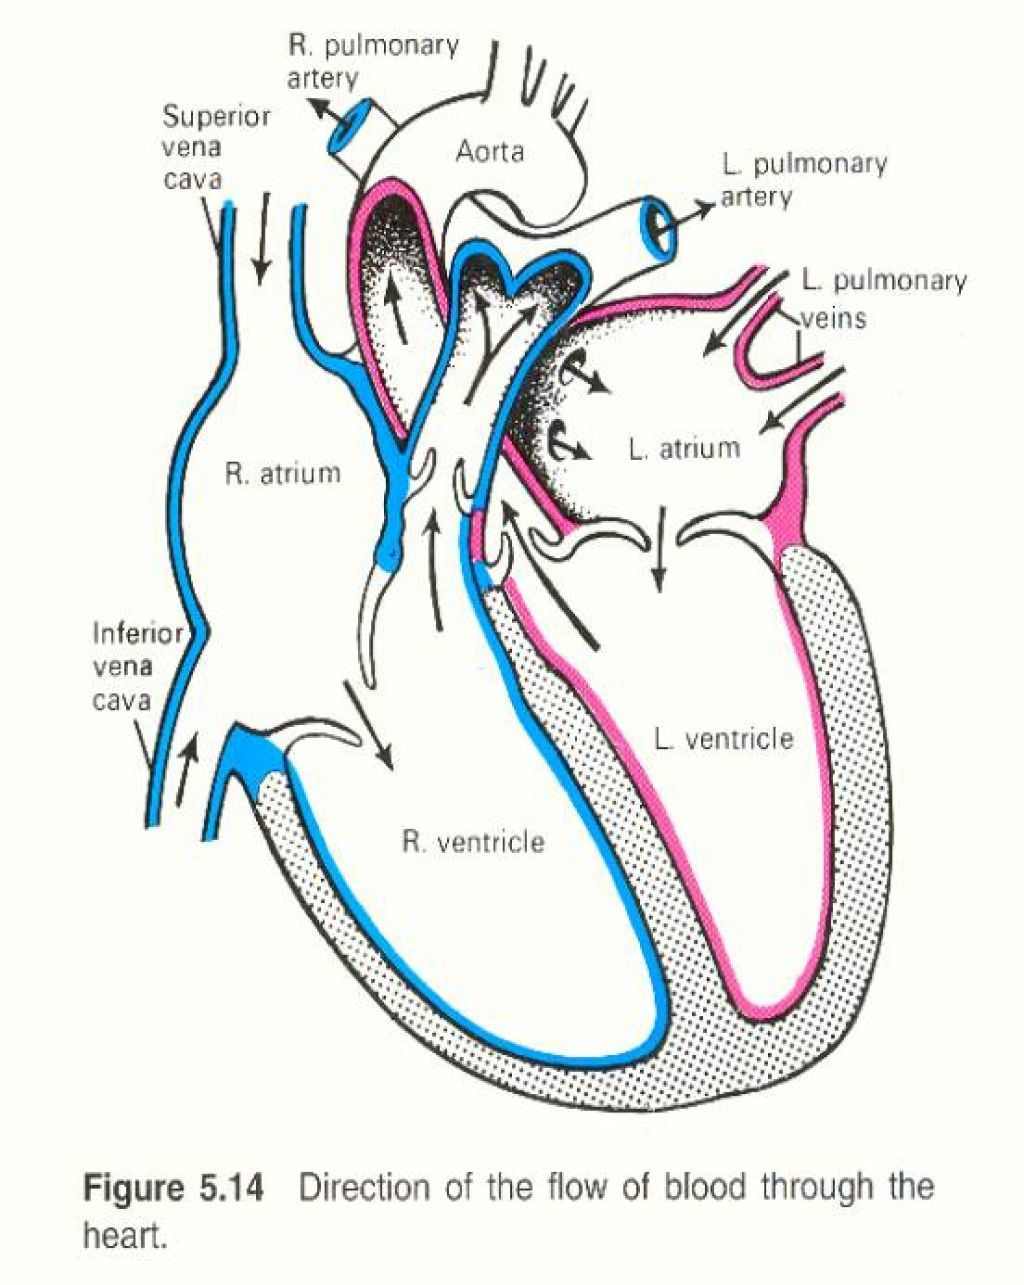 Circulatory System Diagram With Labels Luxury Free Human Heart Sketch Diagram Download Free Clip Art In 2020 Heart Diagram Simple Heart Diagram Human Heart Diagram